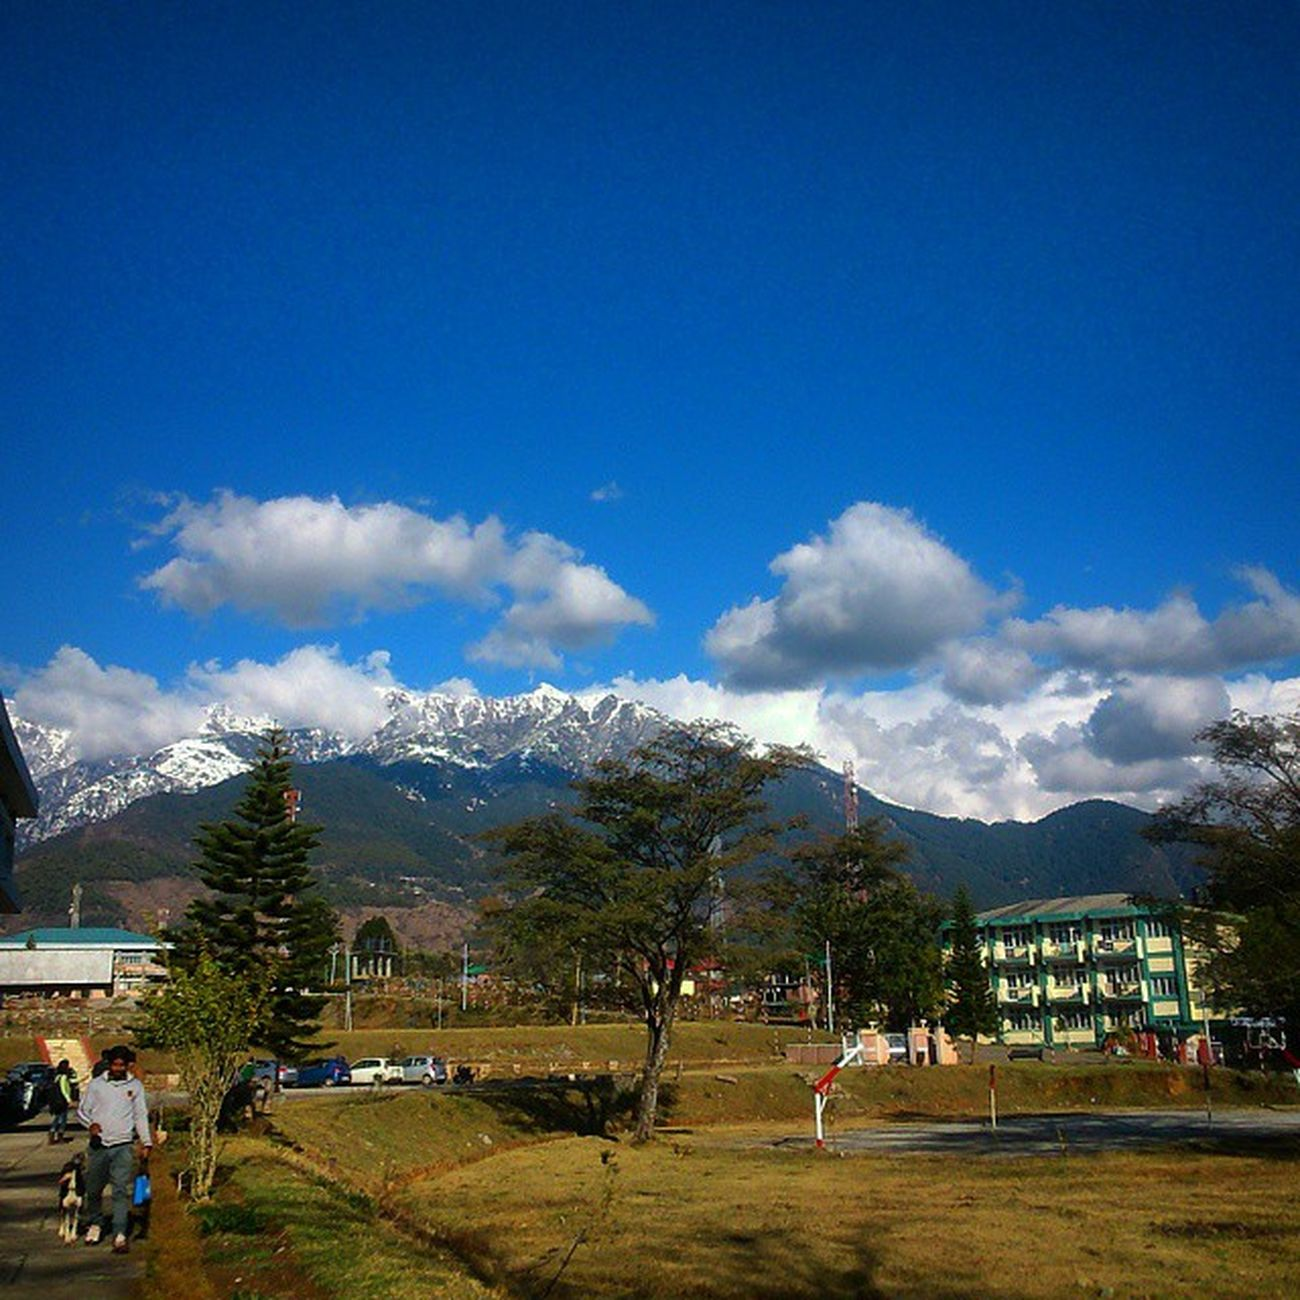 Clouds Instagram XPERIA Himachalpradesh Himachalpictures January Palampur Cskhpkv Afternoon Bestmountainartists Ourindia Ourplanetisbeautiful Autumn Skylovers Skypainters Theworldgram Cloudporn 3D Dhauladhar Ranges Daily_himachal